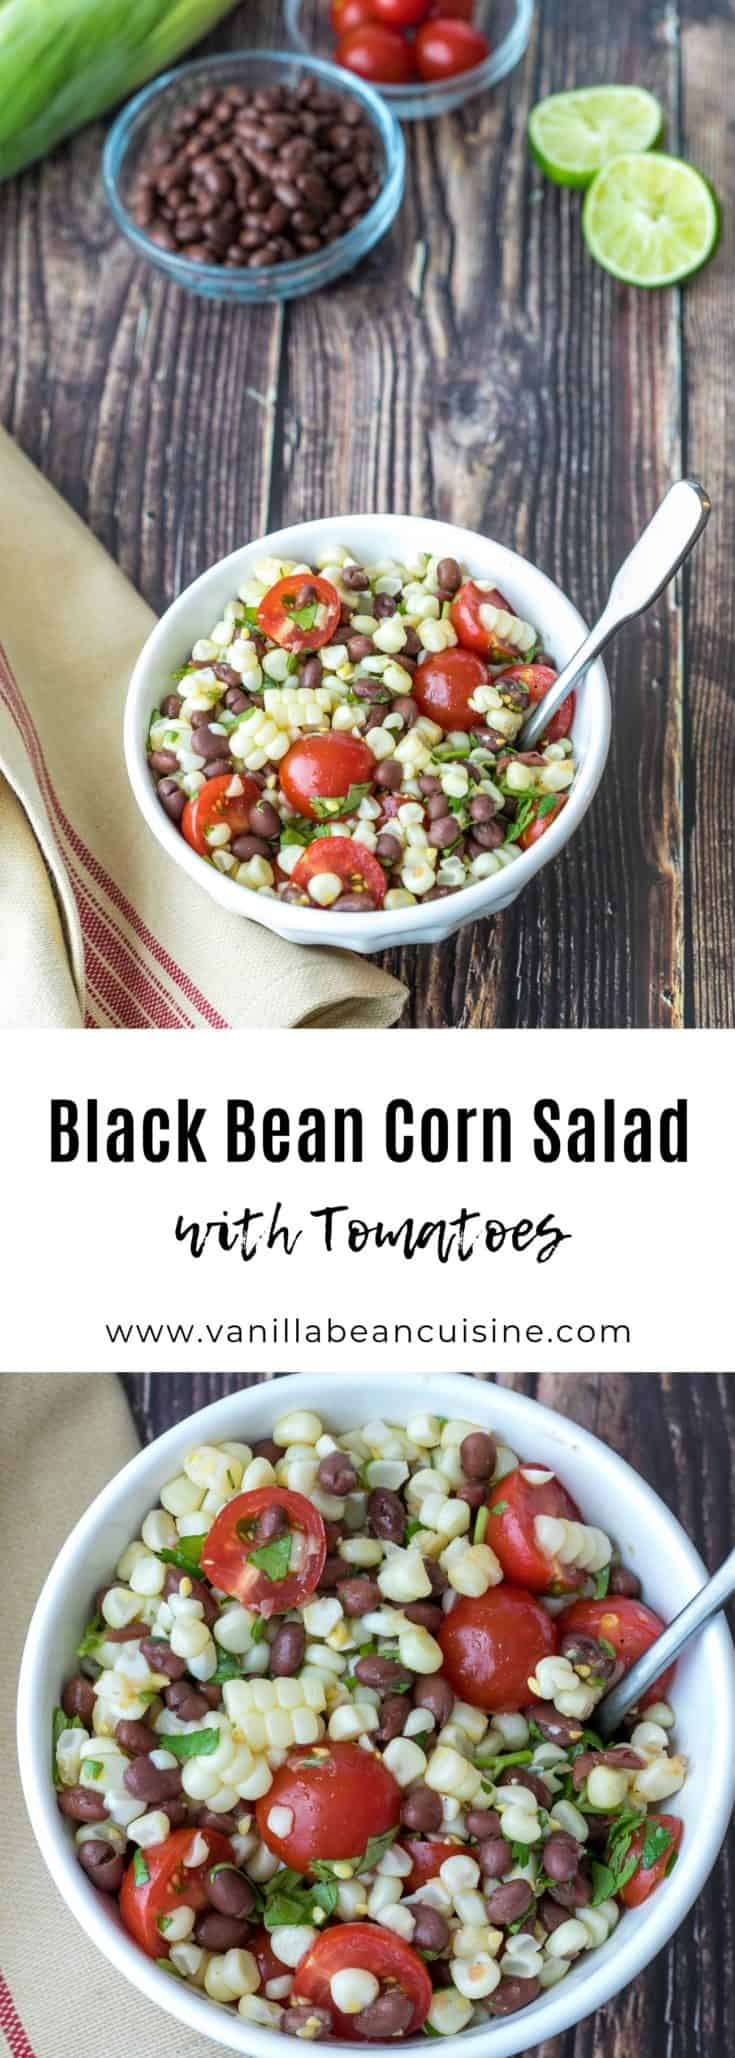 Black Bean and Corn Salad is the ultimate healthy summer side dish—packed with fresh corn, black beans, and cherry tomatoes and dressed with a cilantro-lime vinaigrette. #blackbeanandcornsalad #blackbeancornsalad #summersides #vegan #glutenfree #vanillabeancuisine